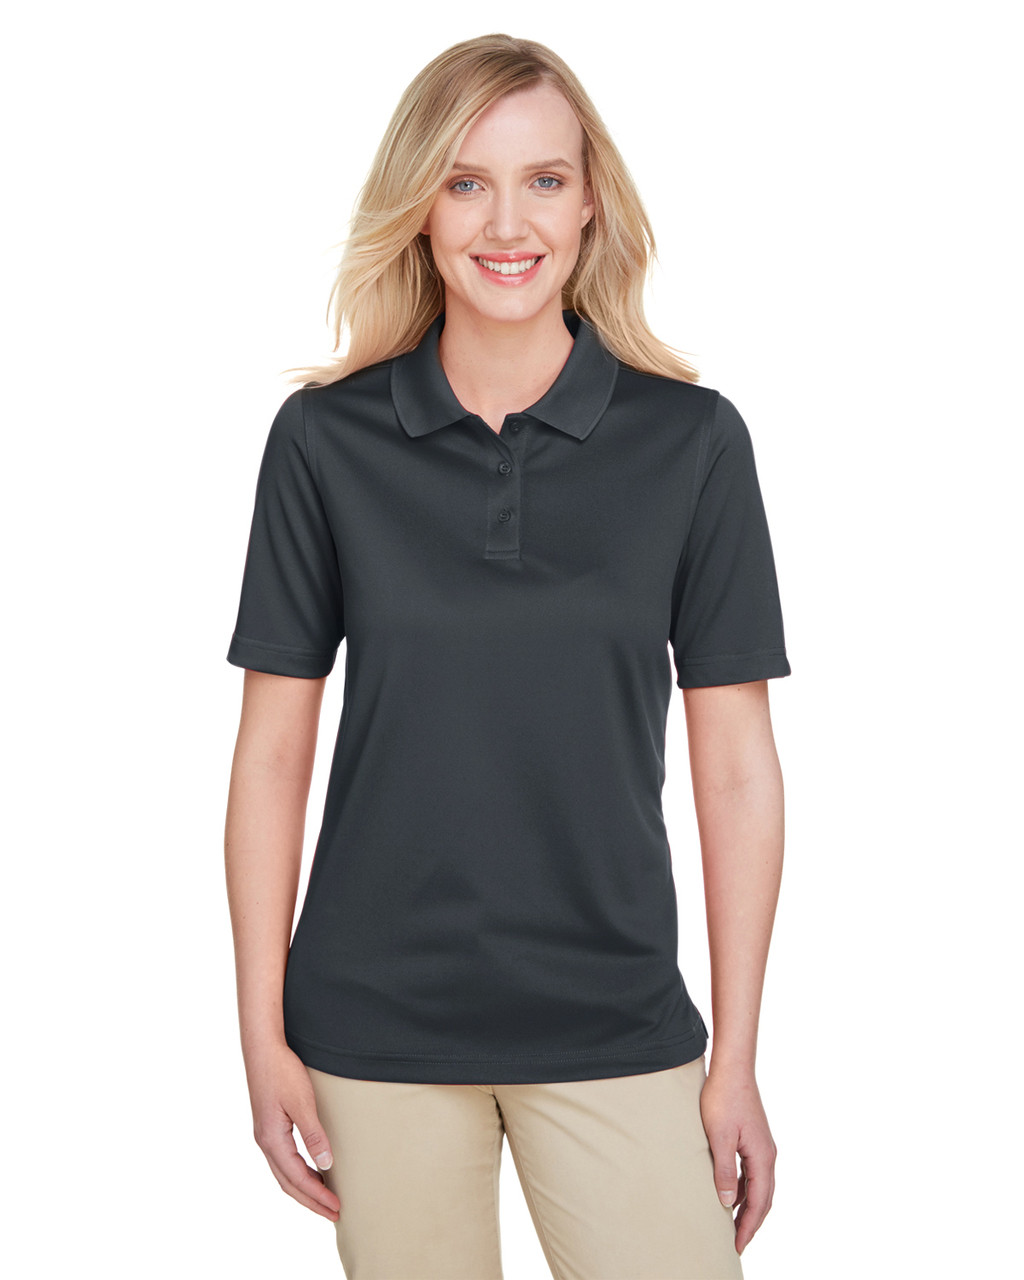 Dark Charcoal - M348W Harriton Ladies' Advantage Snag Protection Plus IL Polo Shirt | Blankclothing.ca